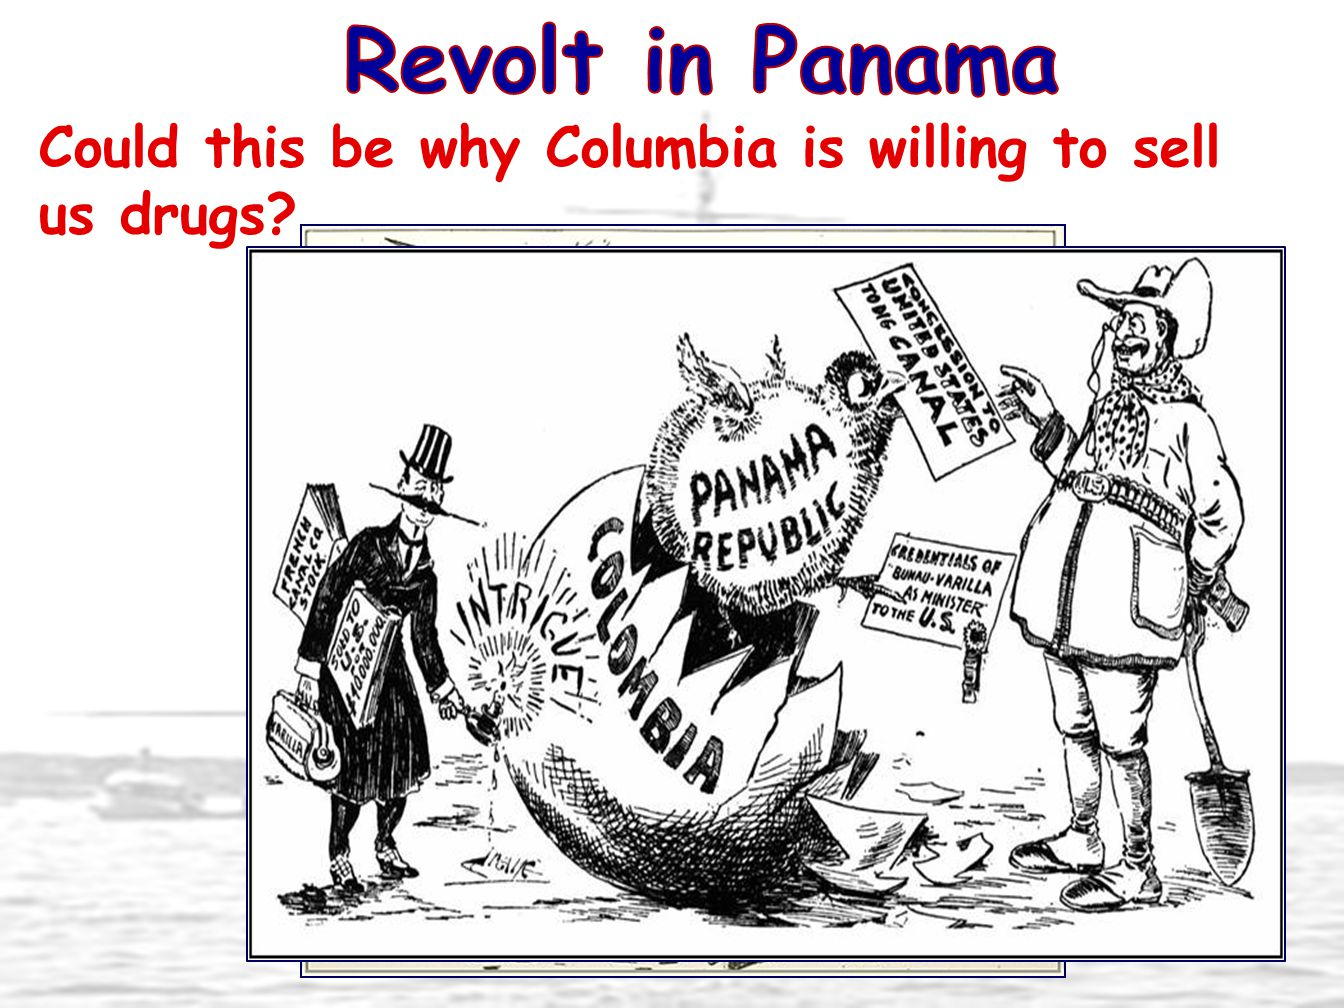 Revolt in Panama Could this be why Columbia is willing to sell us drugs